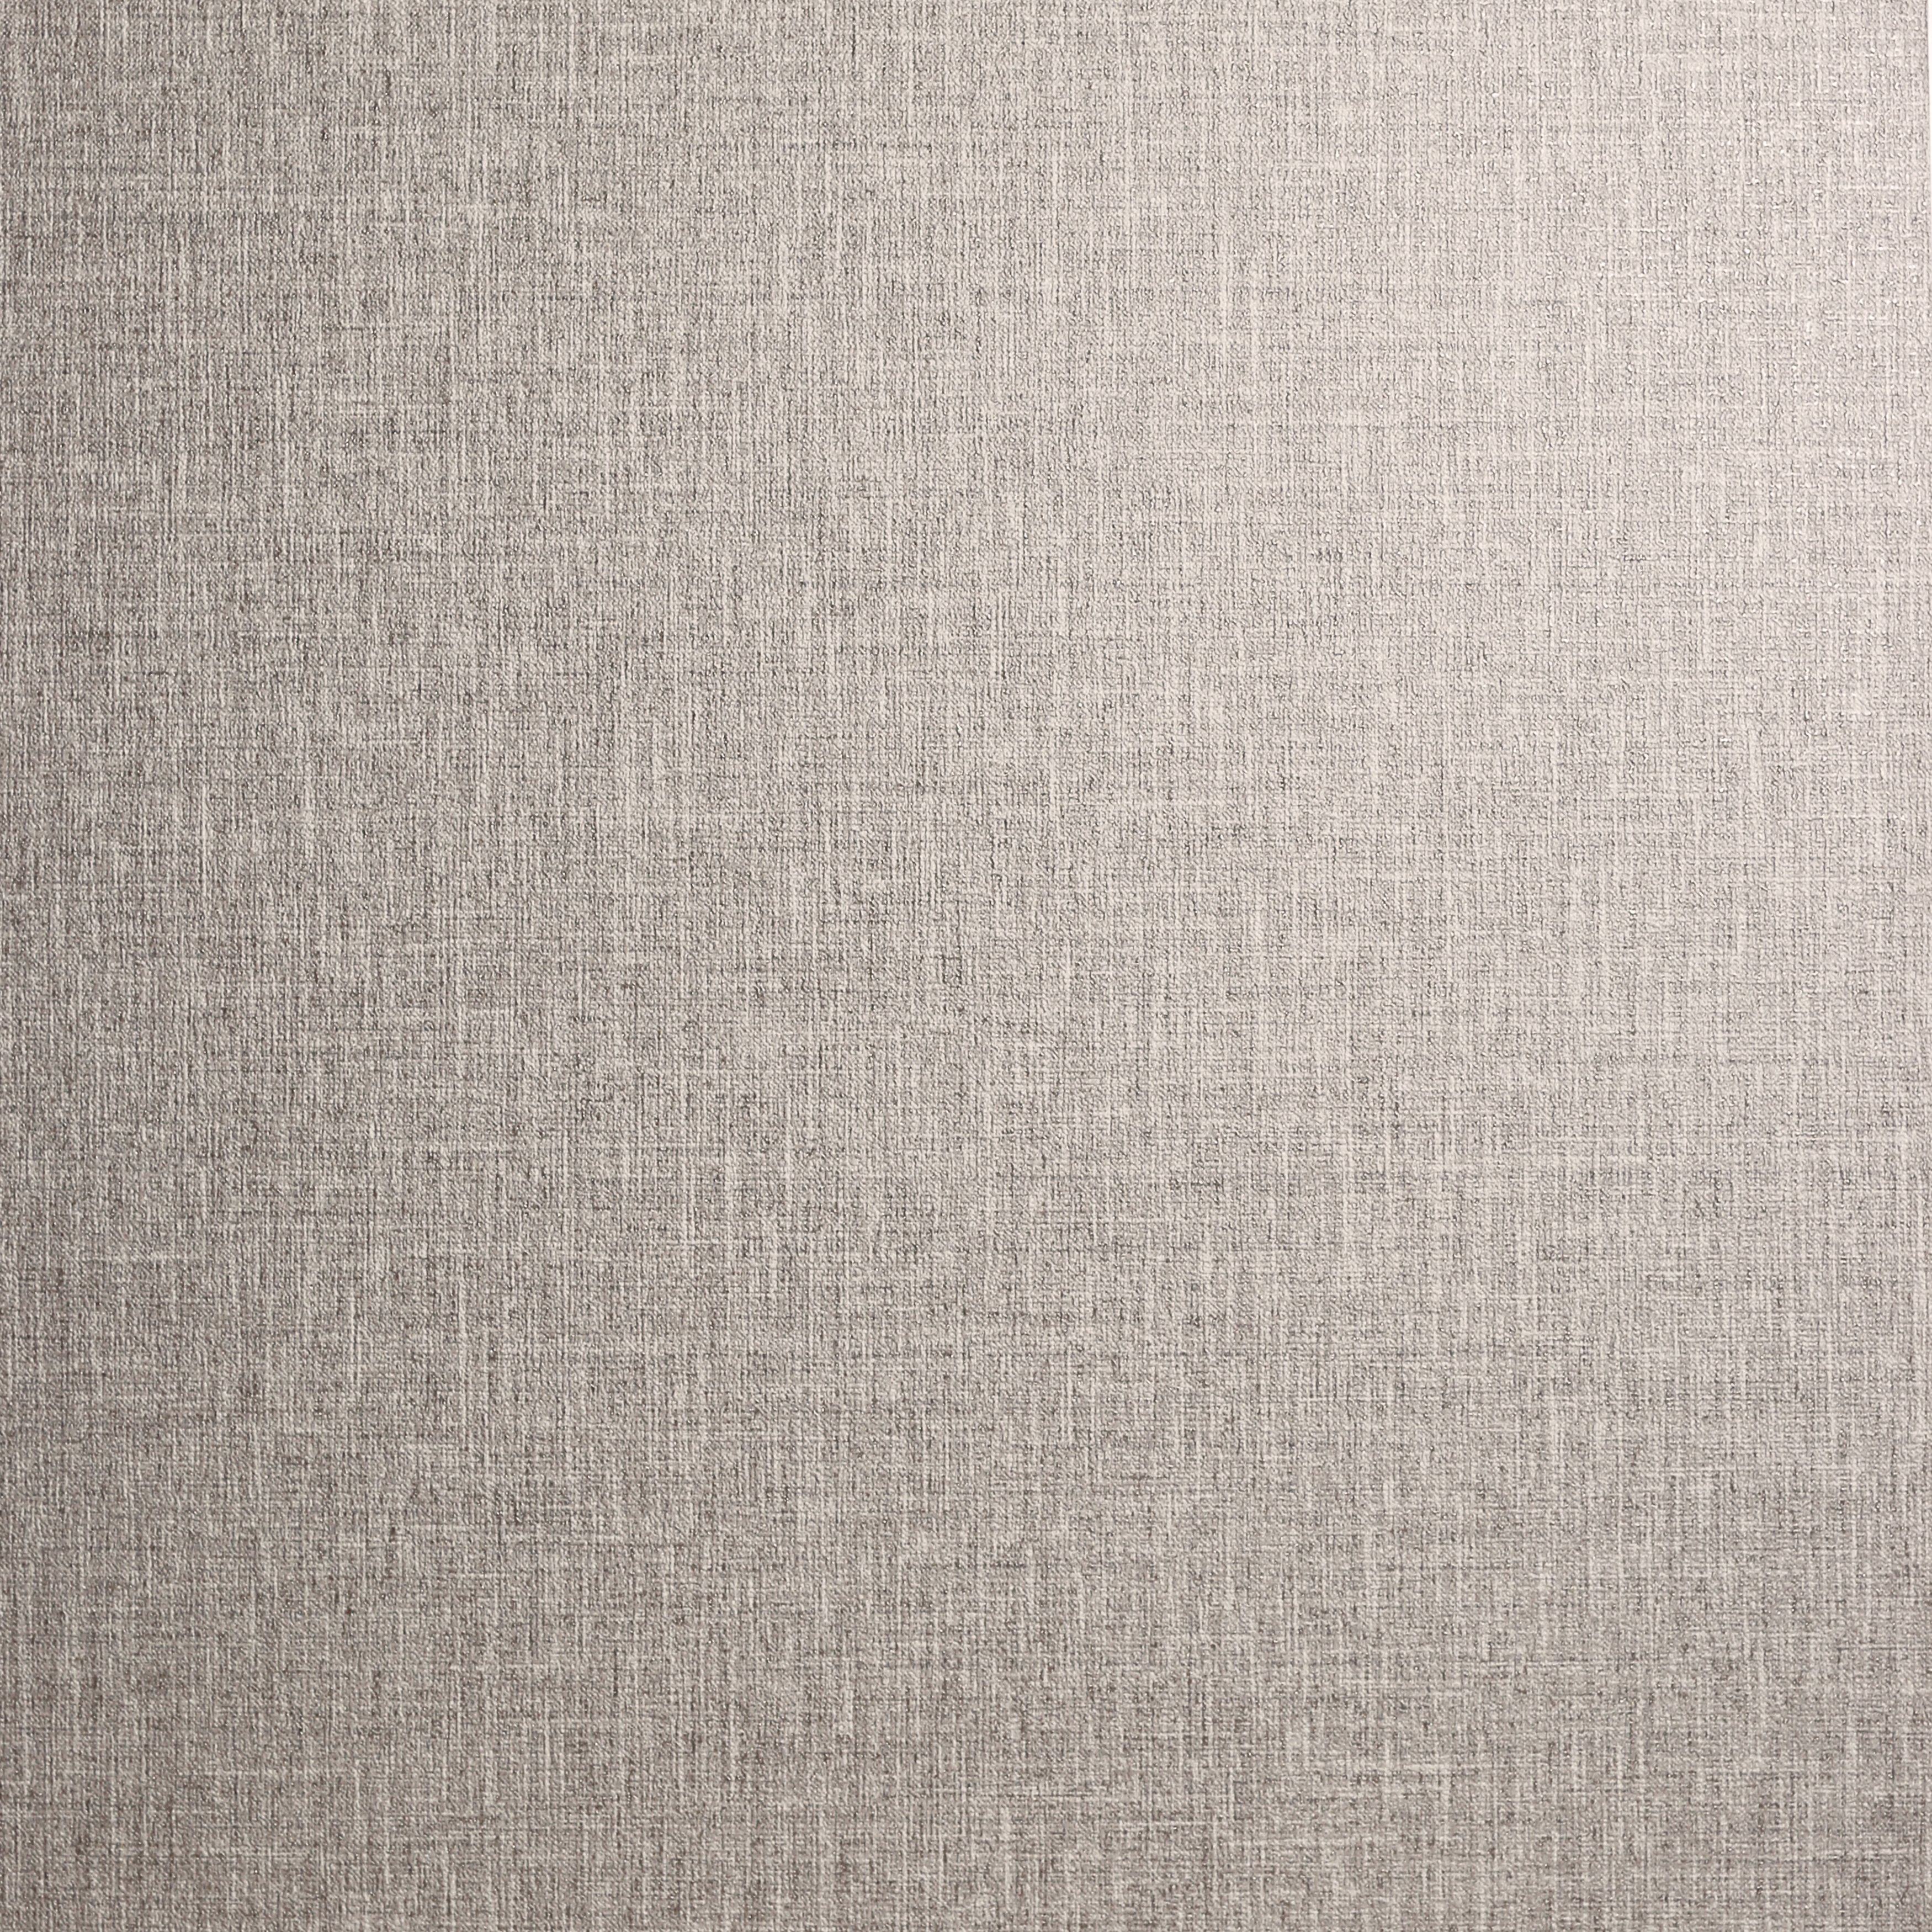 COUNTRY PLAIN TAUPE